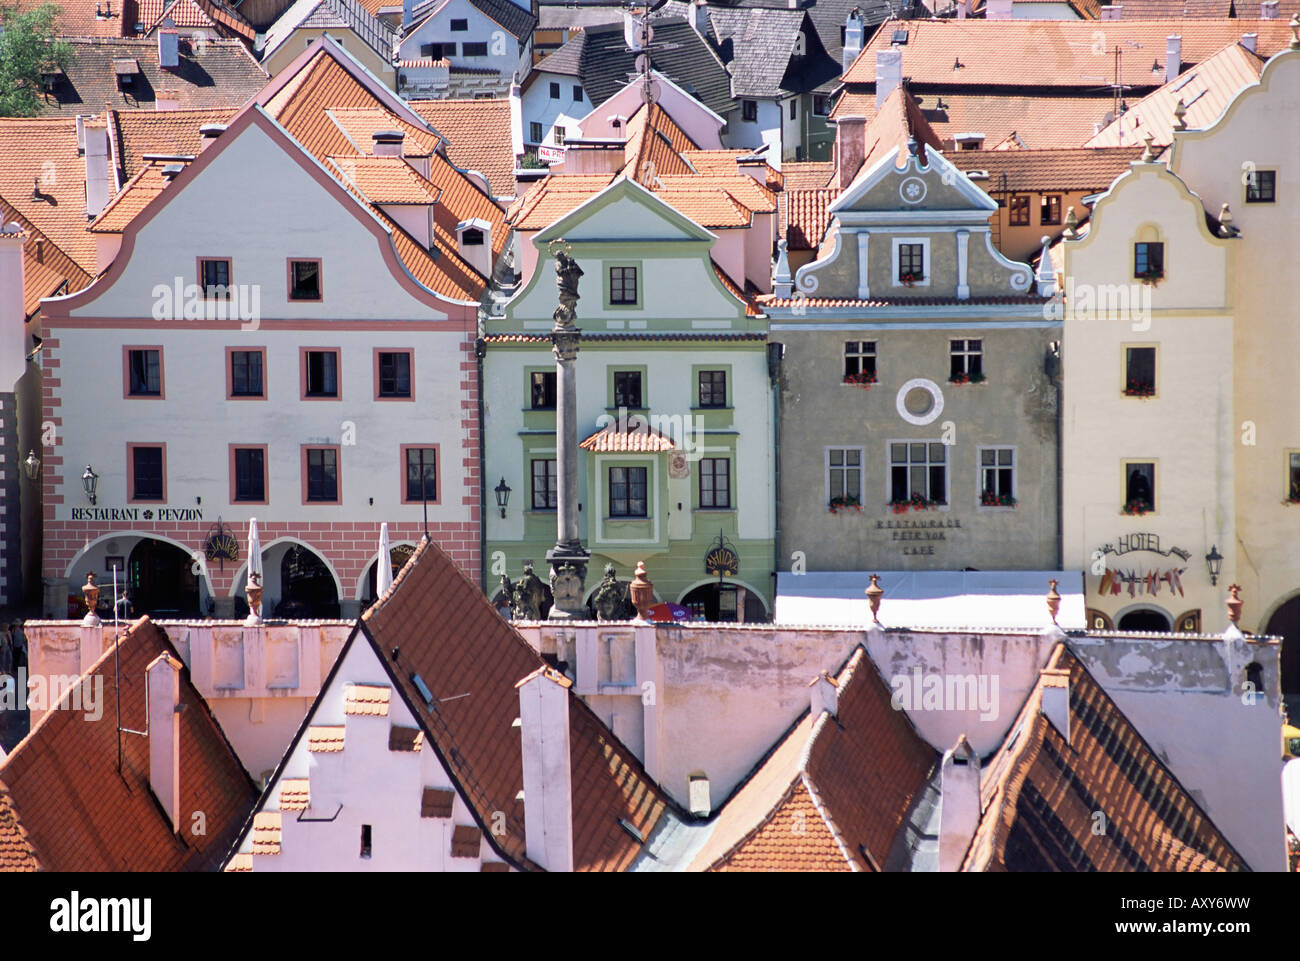 View from the castle of the town square, Cesky Krumlov, UNESCO World Heritage Site, Czech Republic, Europe - Stock Image